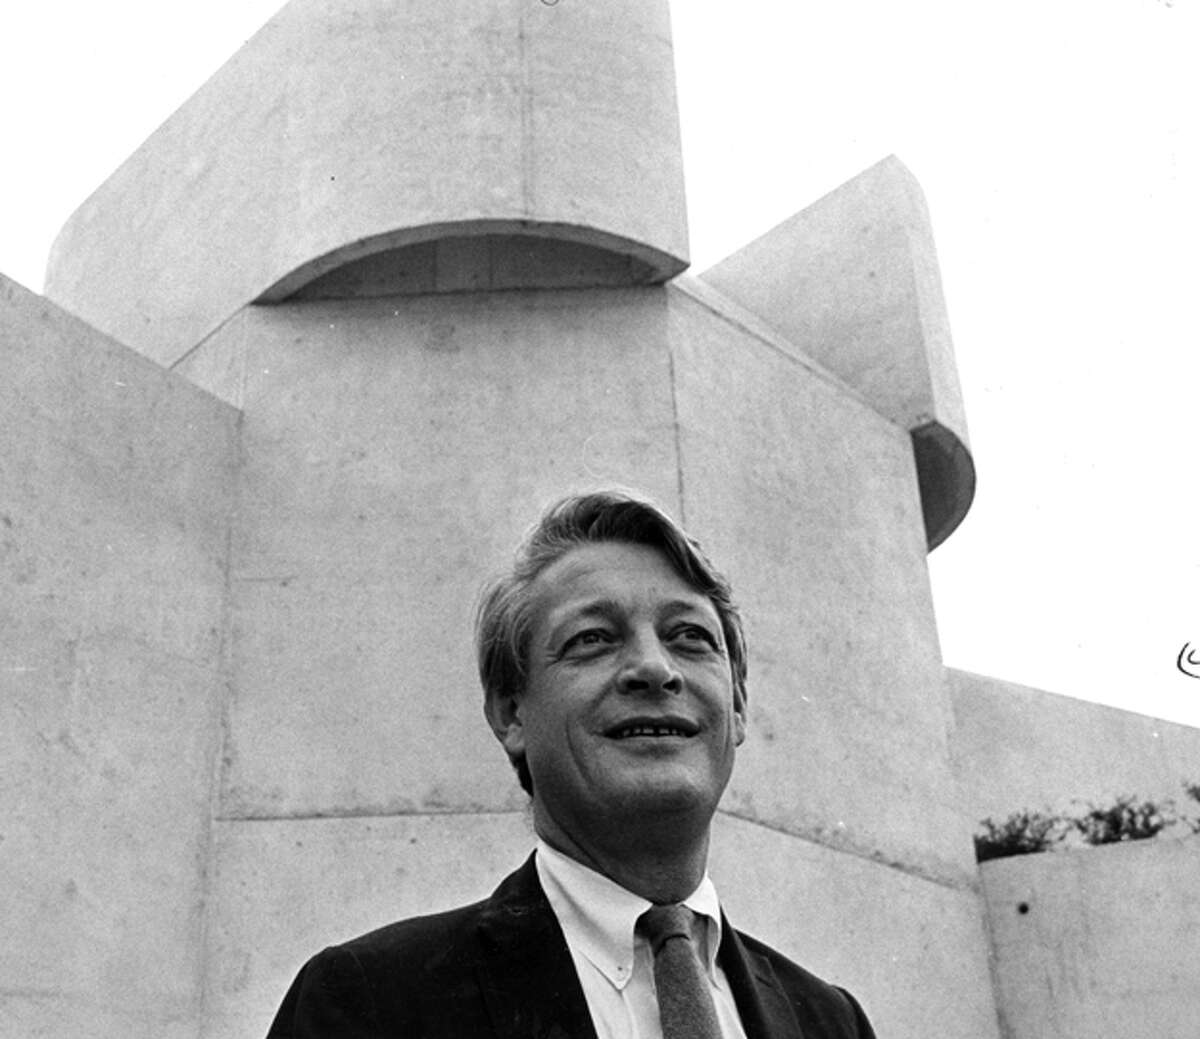 Architect Ulrich Franzen, outside the Alley Theatre at its November 1968 opening. The Alley was the first of the Brutalist buildings that made him famous.